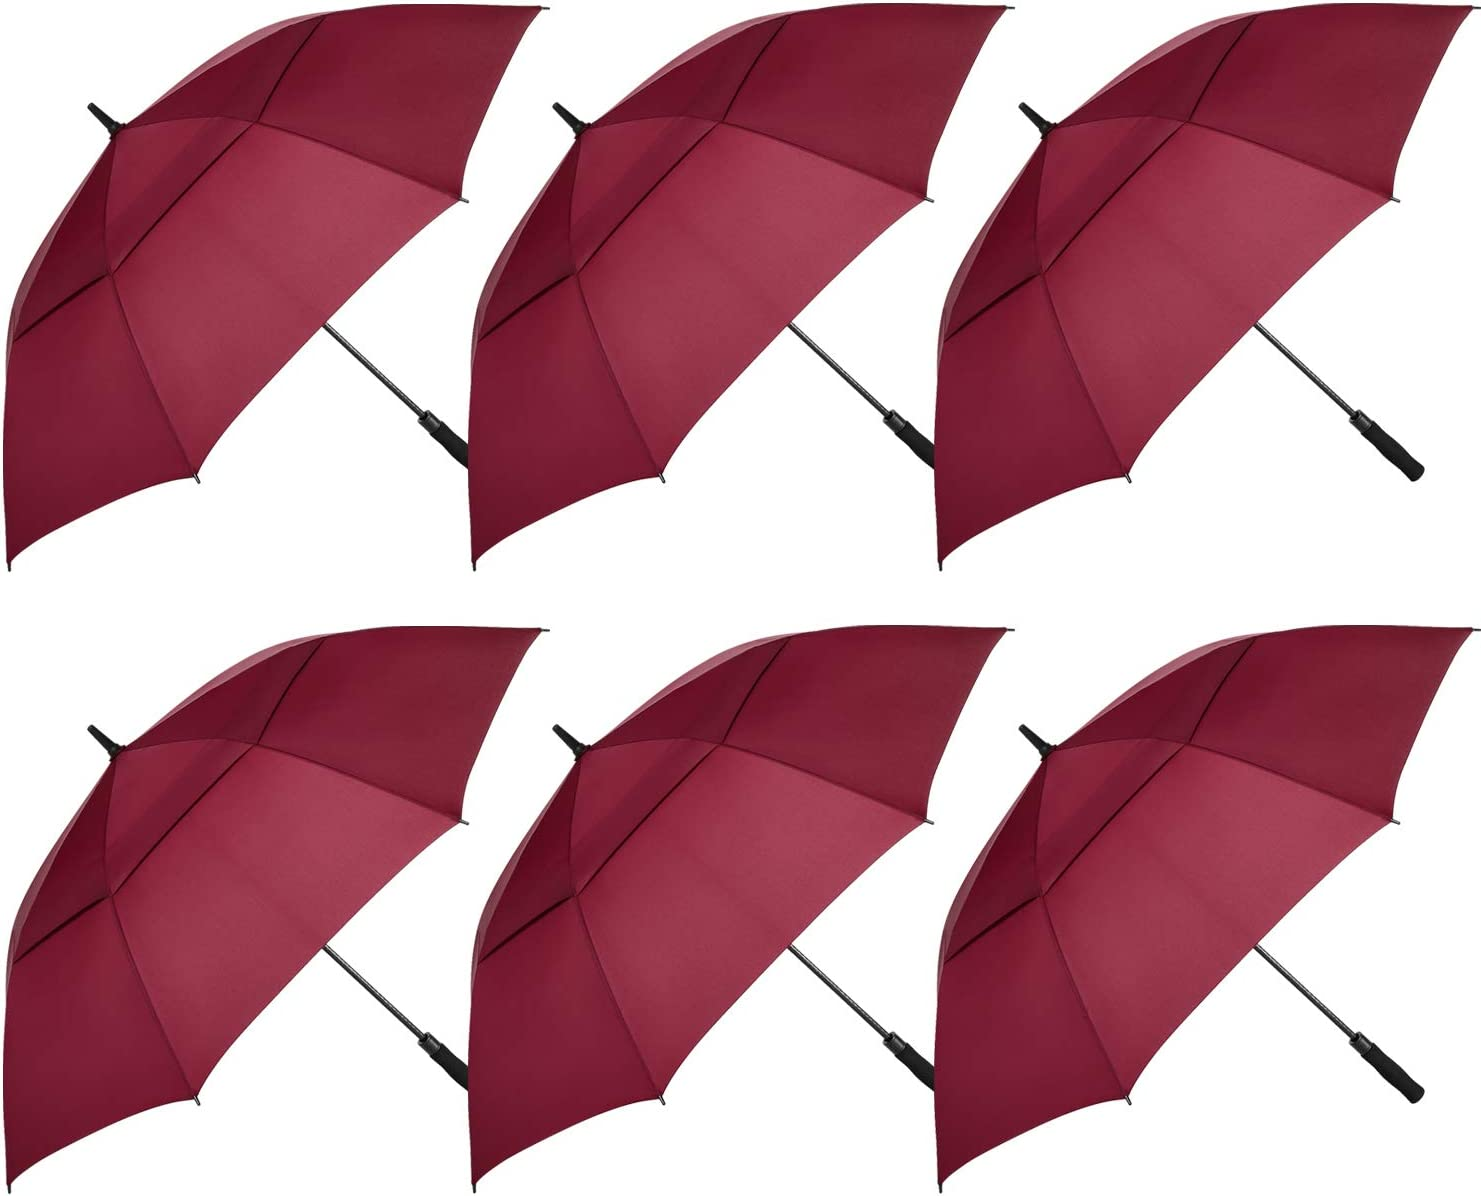 MRTLLOA 6 Pack Golf Umbrella 68 Oversize Limited price Inch Ca 62 Very popular Double Large